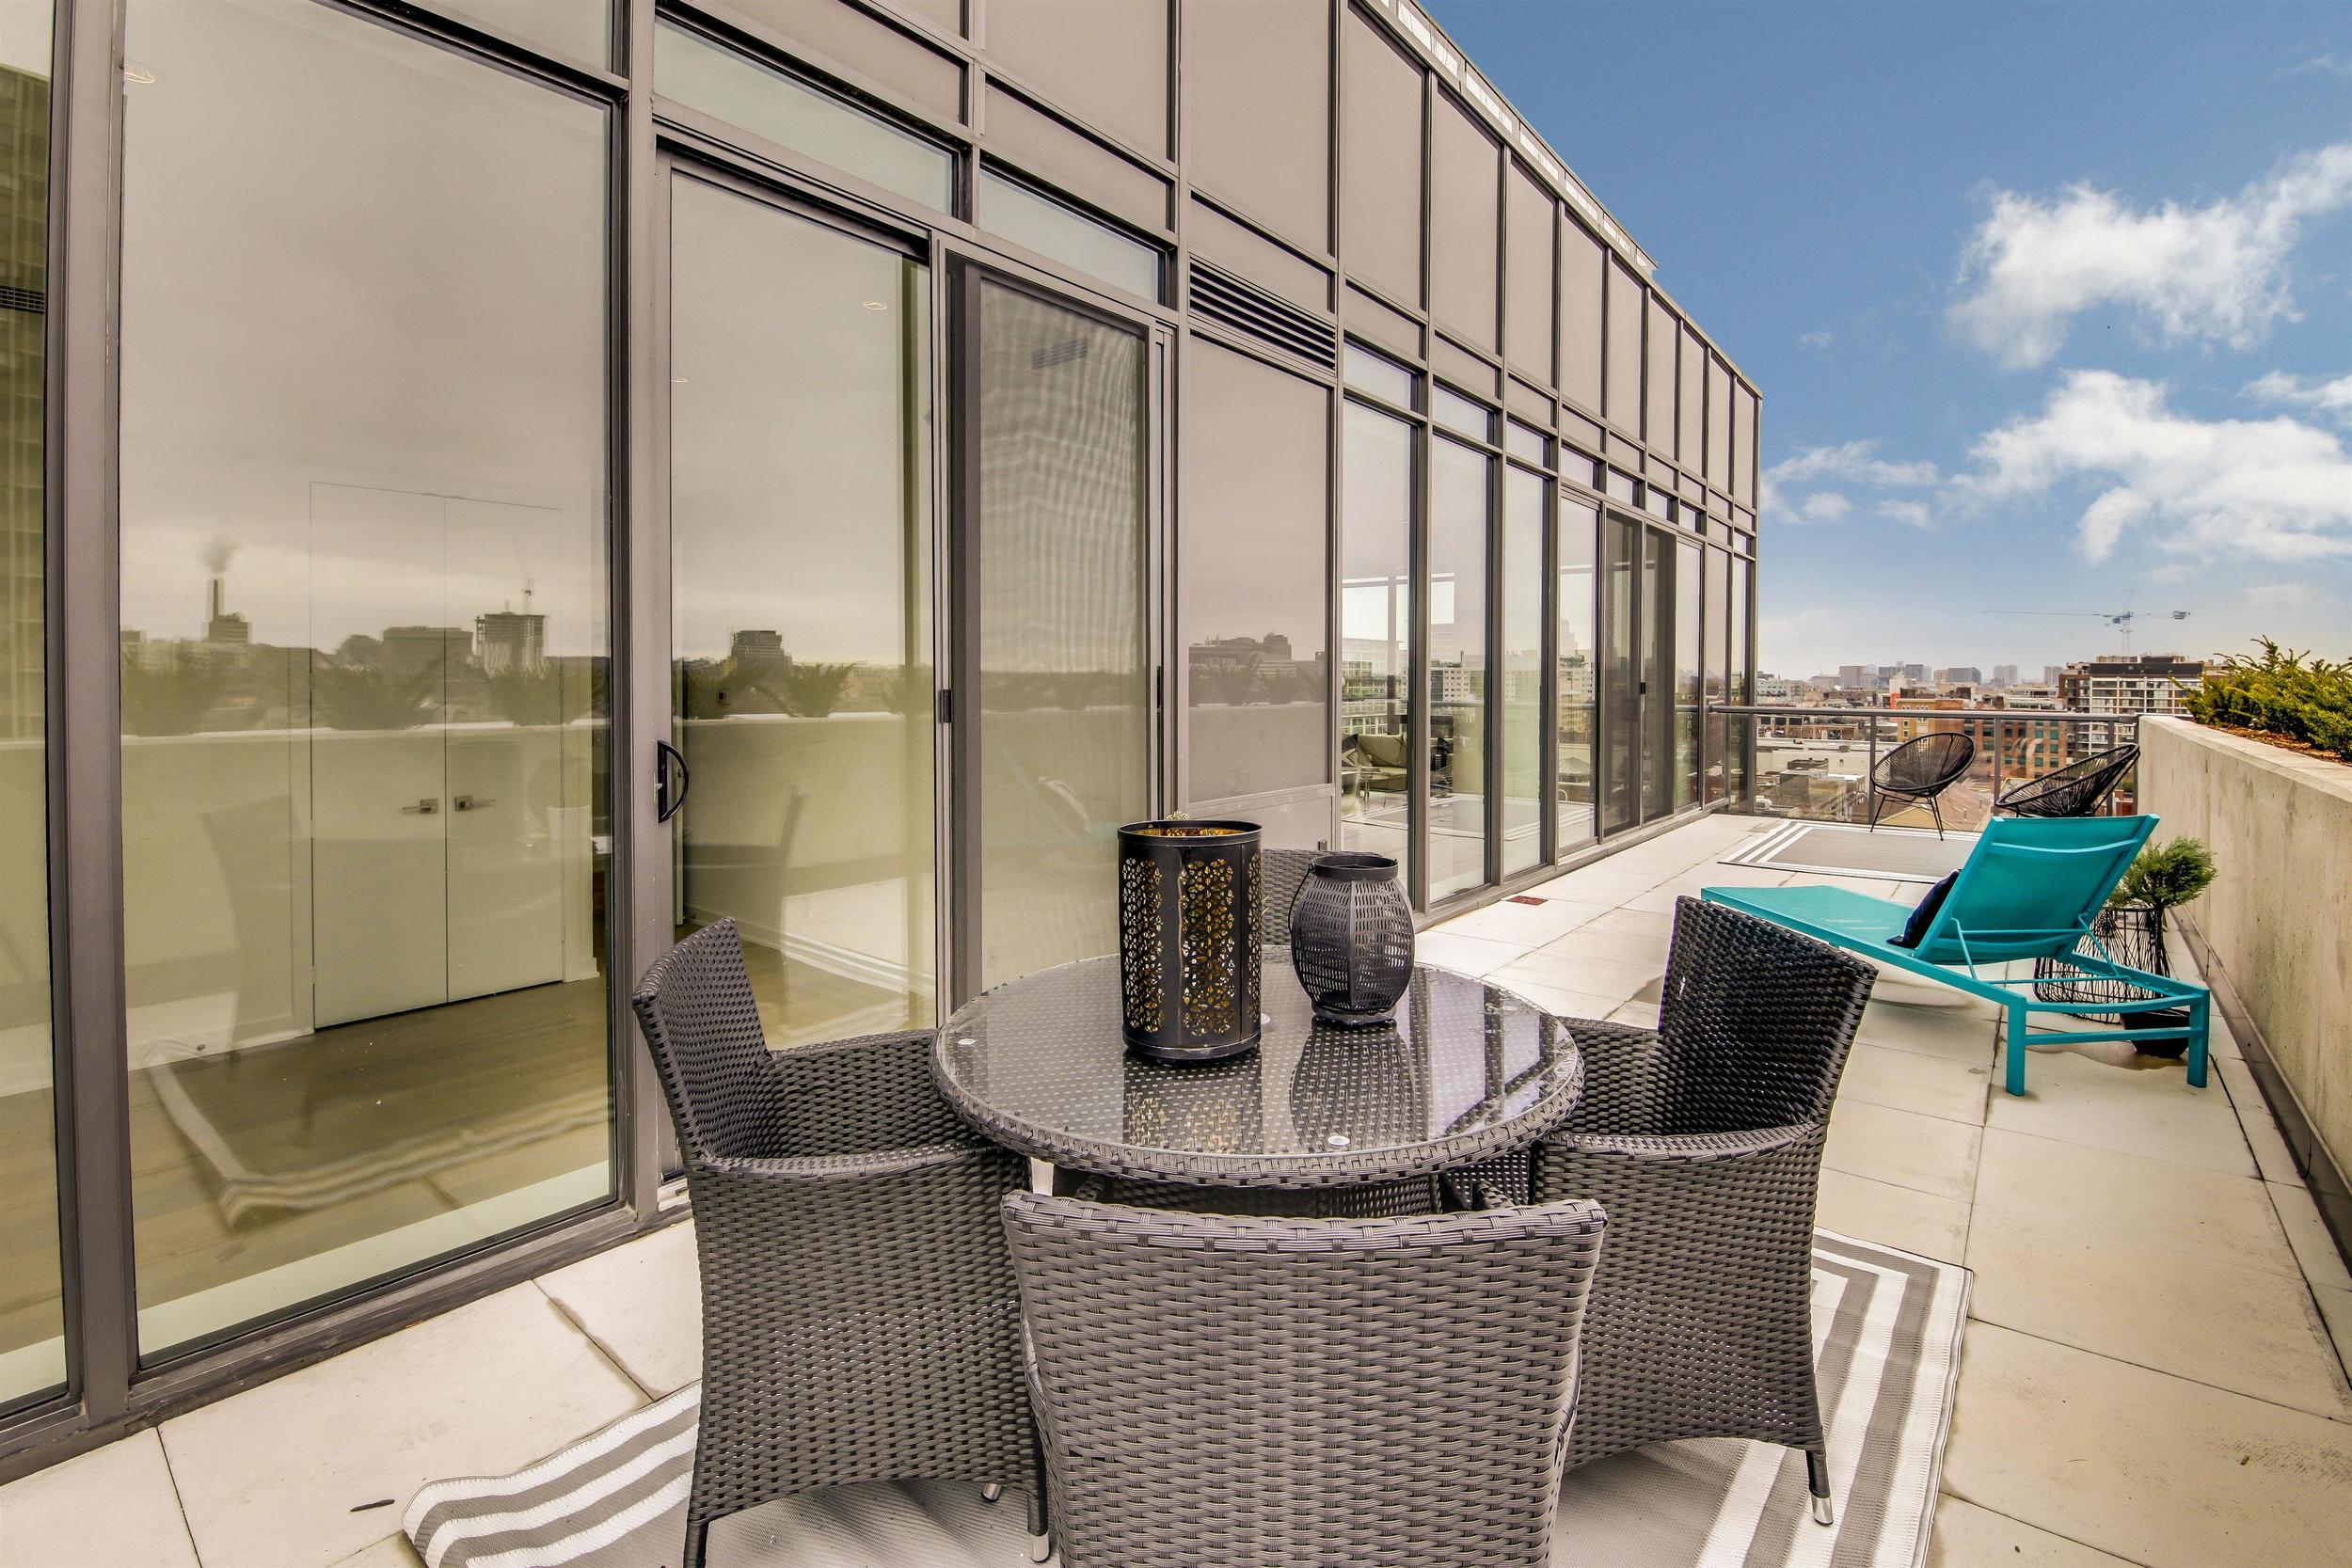 The terrace we staged at the 12 Degrees penthouse. We created spaces to eat, lounge and sit with friends.